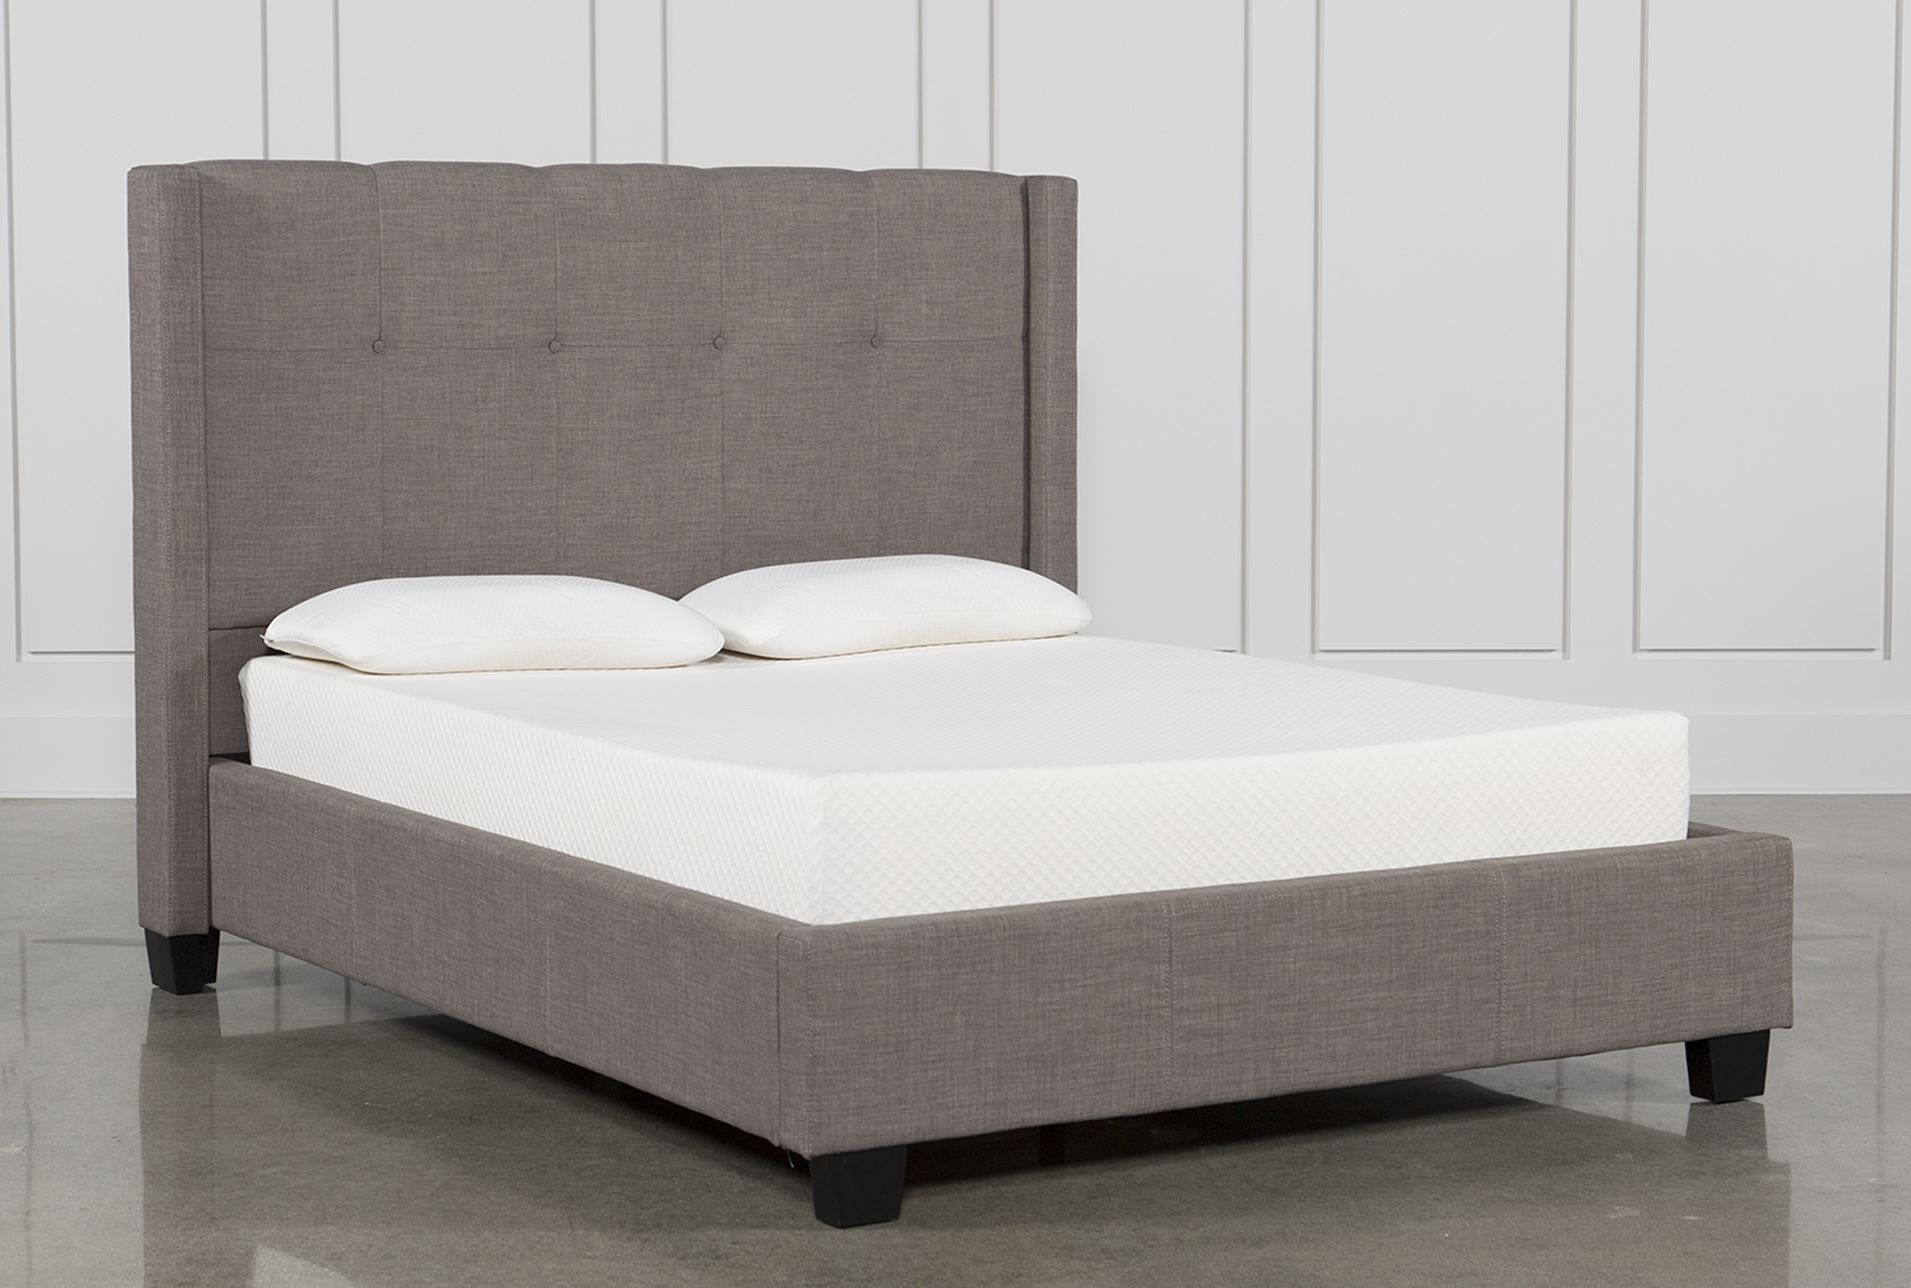 Damon II Queen Upholstered Platform Bed | Deco